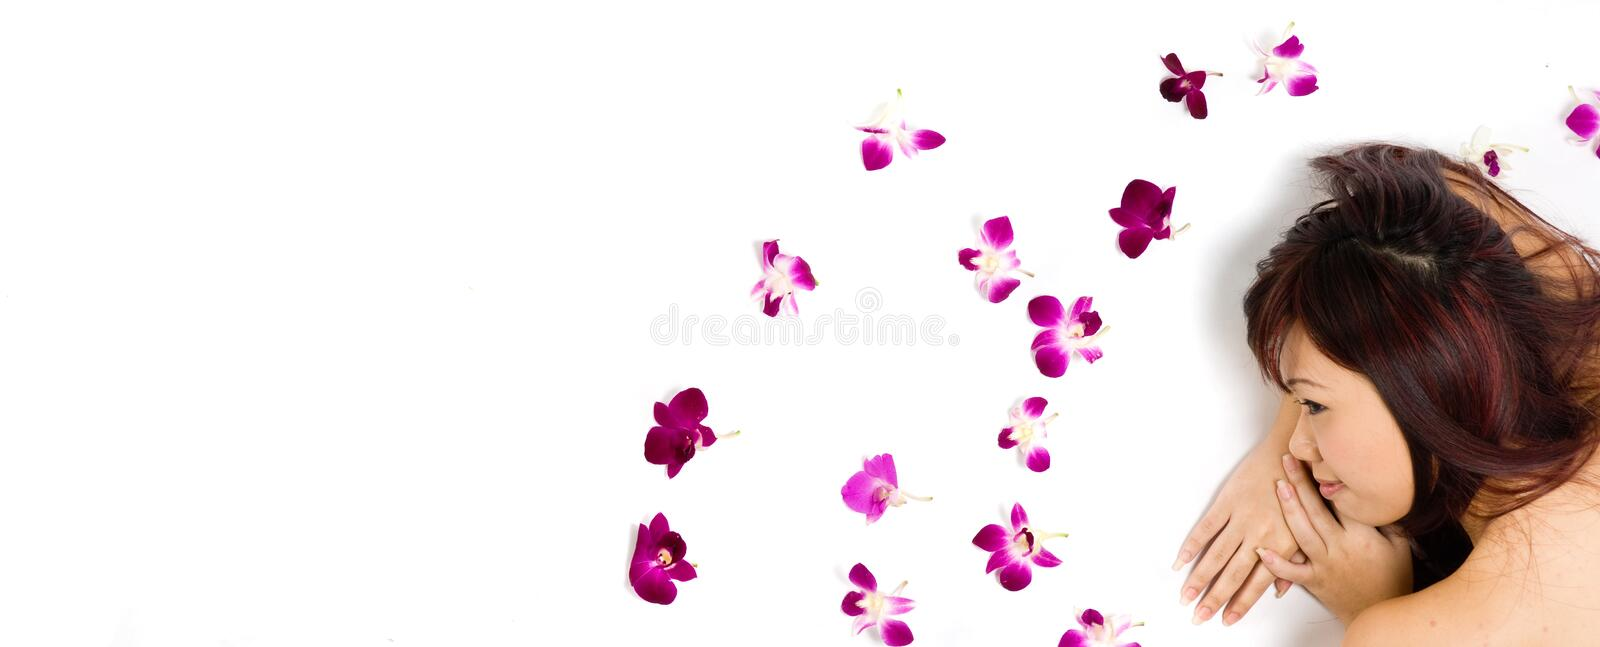 Download Tropical Beauty stock photo. Image of natural, flowers - 3200090